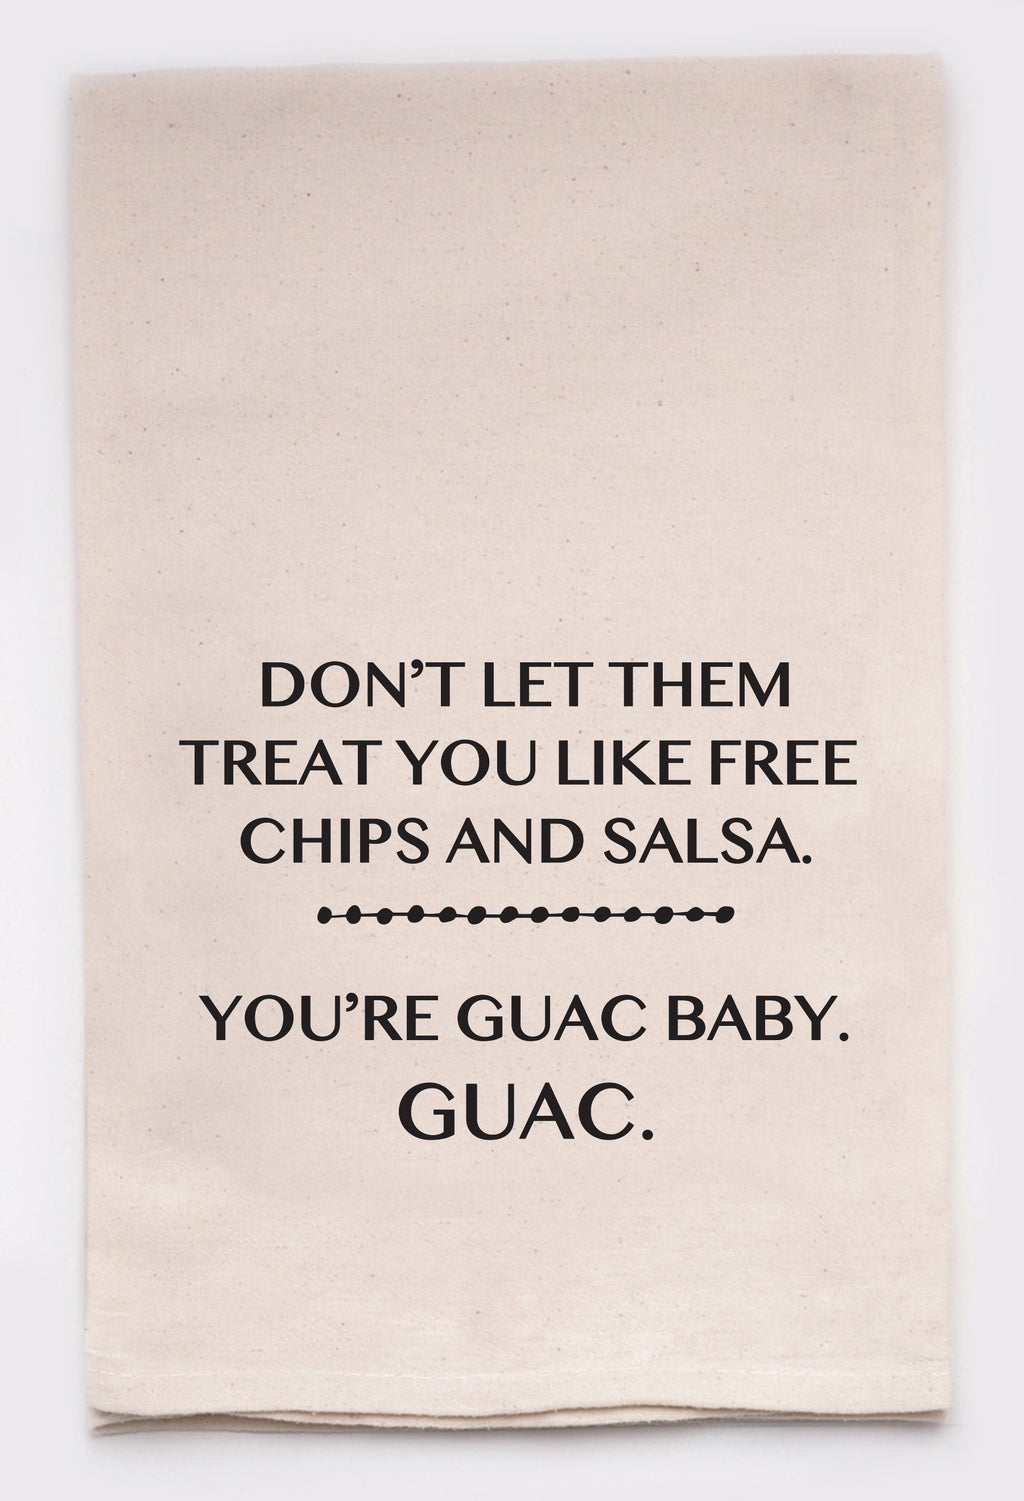 don't let them treat you like free chips and salsa, you're guac baby, guac